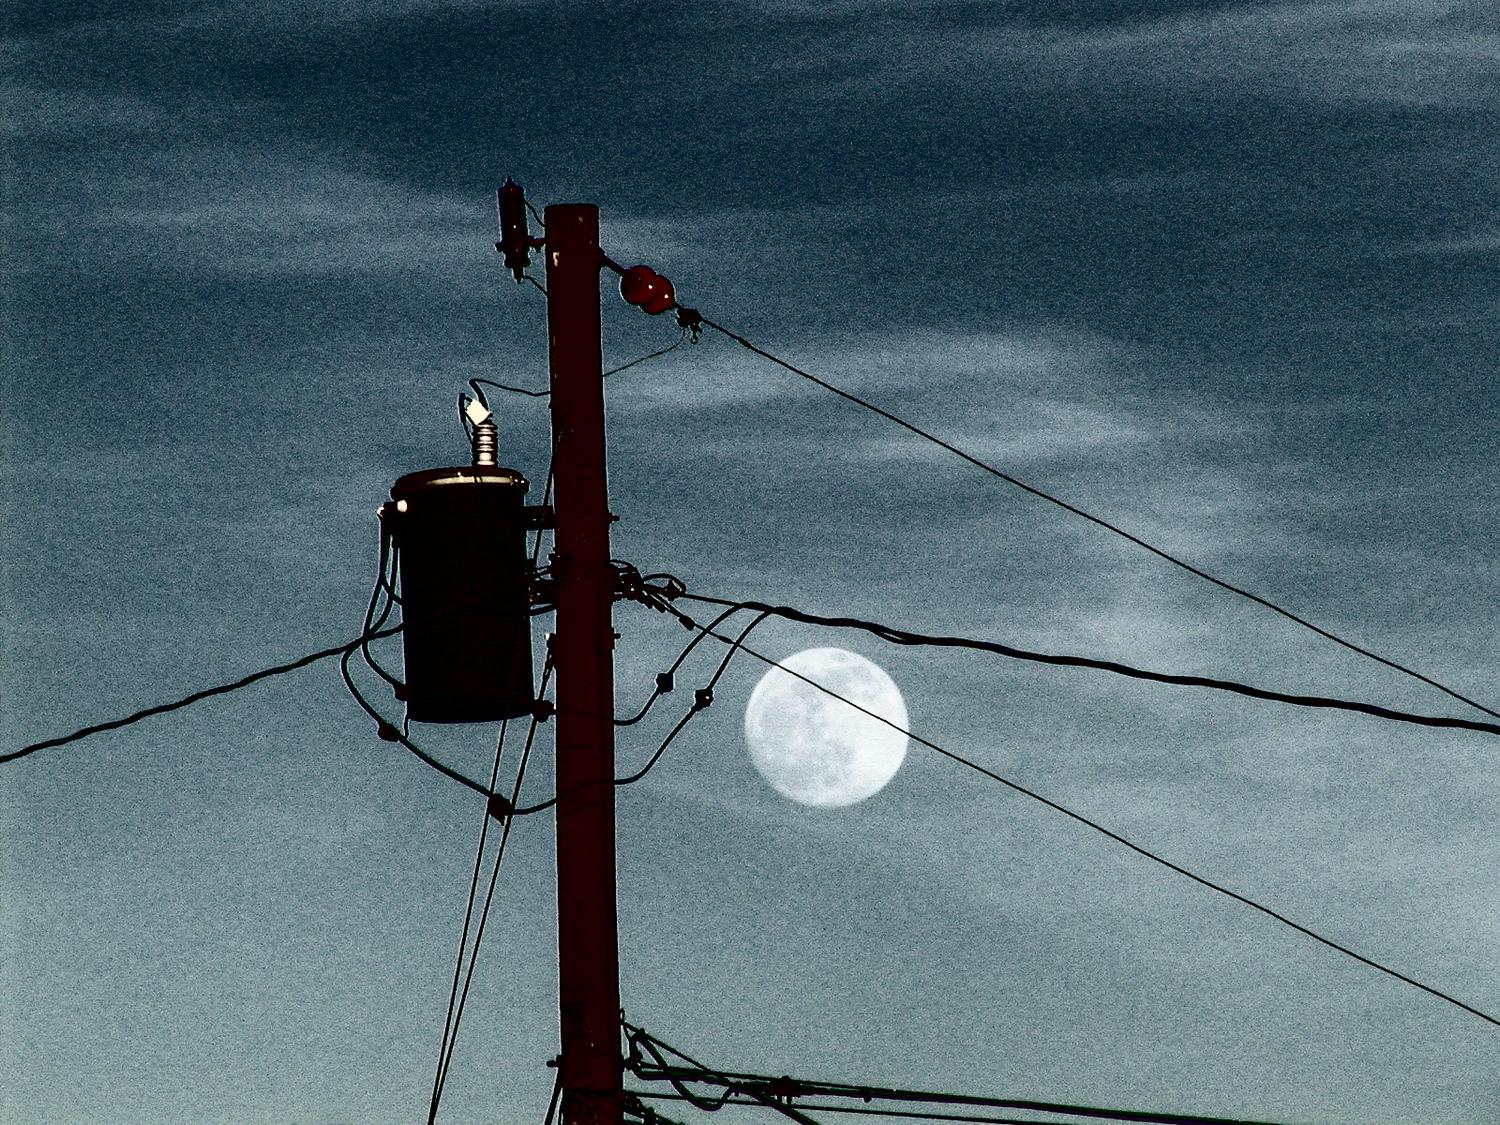 the moon against power lines - Powerline moon - Olympus C-2100UZ - Tony Karp, design, art, photography, techno-impressionist, techno-impressionism, aerial photography , drone , drones , dji , mavic pro , video , 3D printing - Books -